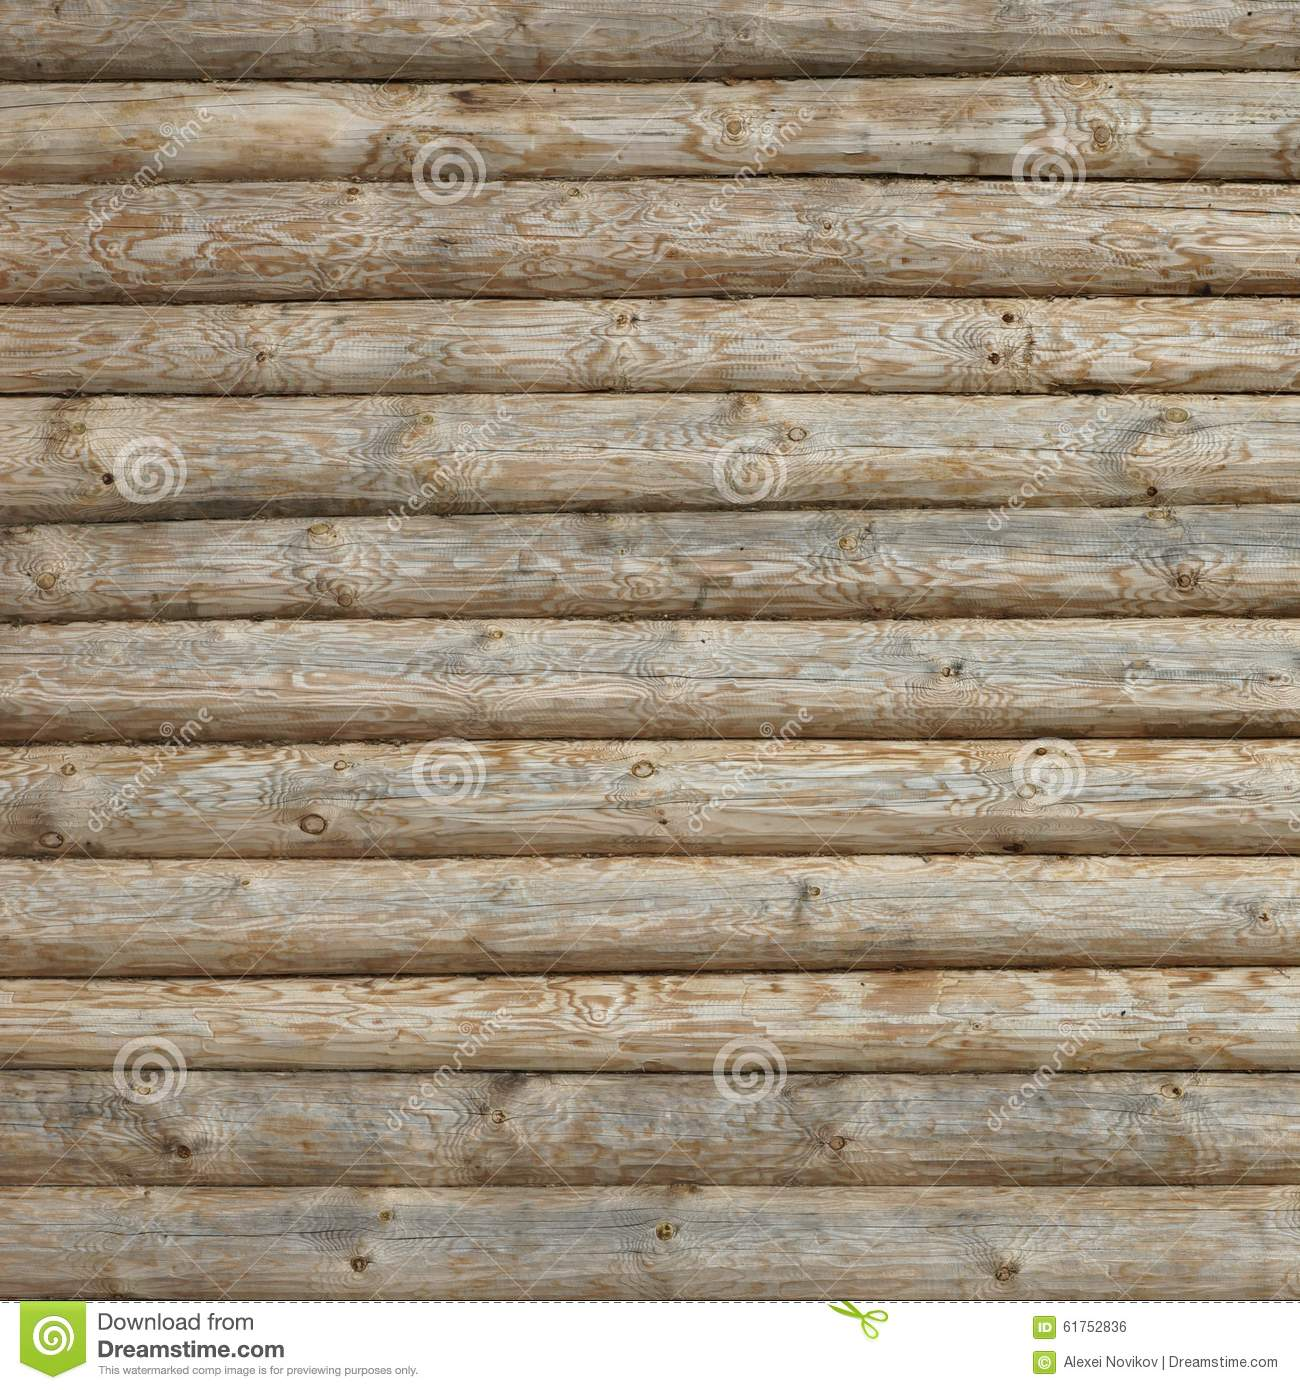 Stock Photo Wooden Log Cabin Old Wall Natural Colored Horizontal Background Texture Detail Close Up Image61752836 moreover 3 Photos 1960 Time Capsule Mid Century Modern Ranch House C  Hill Pennsylvania also Stock Illustration Tangram Puzzle House White Background Image50641231 furthermore Stock Photo Christmas Open House Image17074310 as well Stock Illustration Industrial Buildings Flat Design Industry Ecology Concept Image44552663. on retro modern house plans